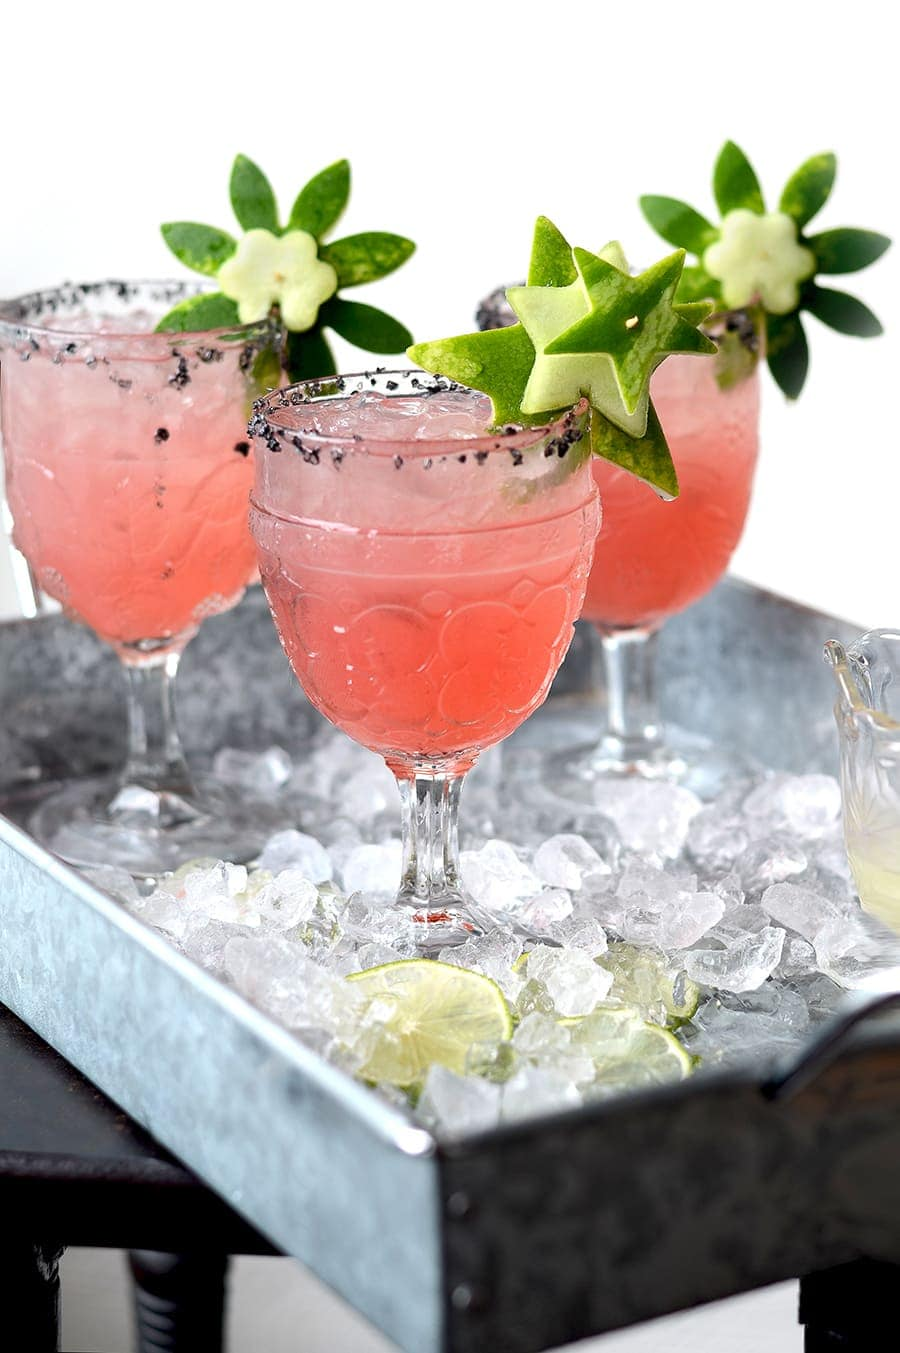 Watermelon Margaritas Stars Web 2 - Watermelon Margaritas with Watermelon Rind Garnish